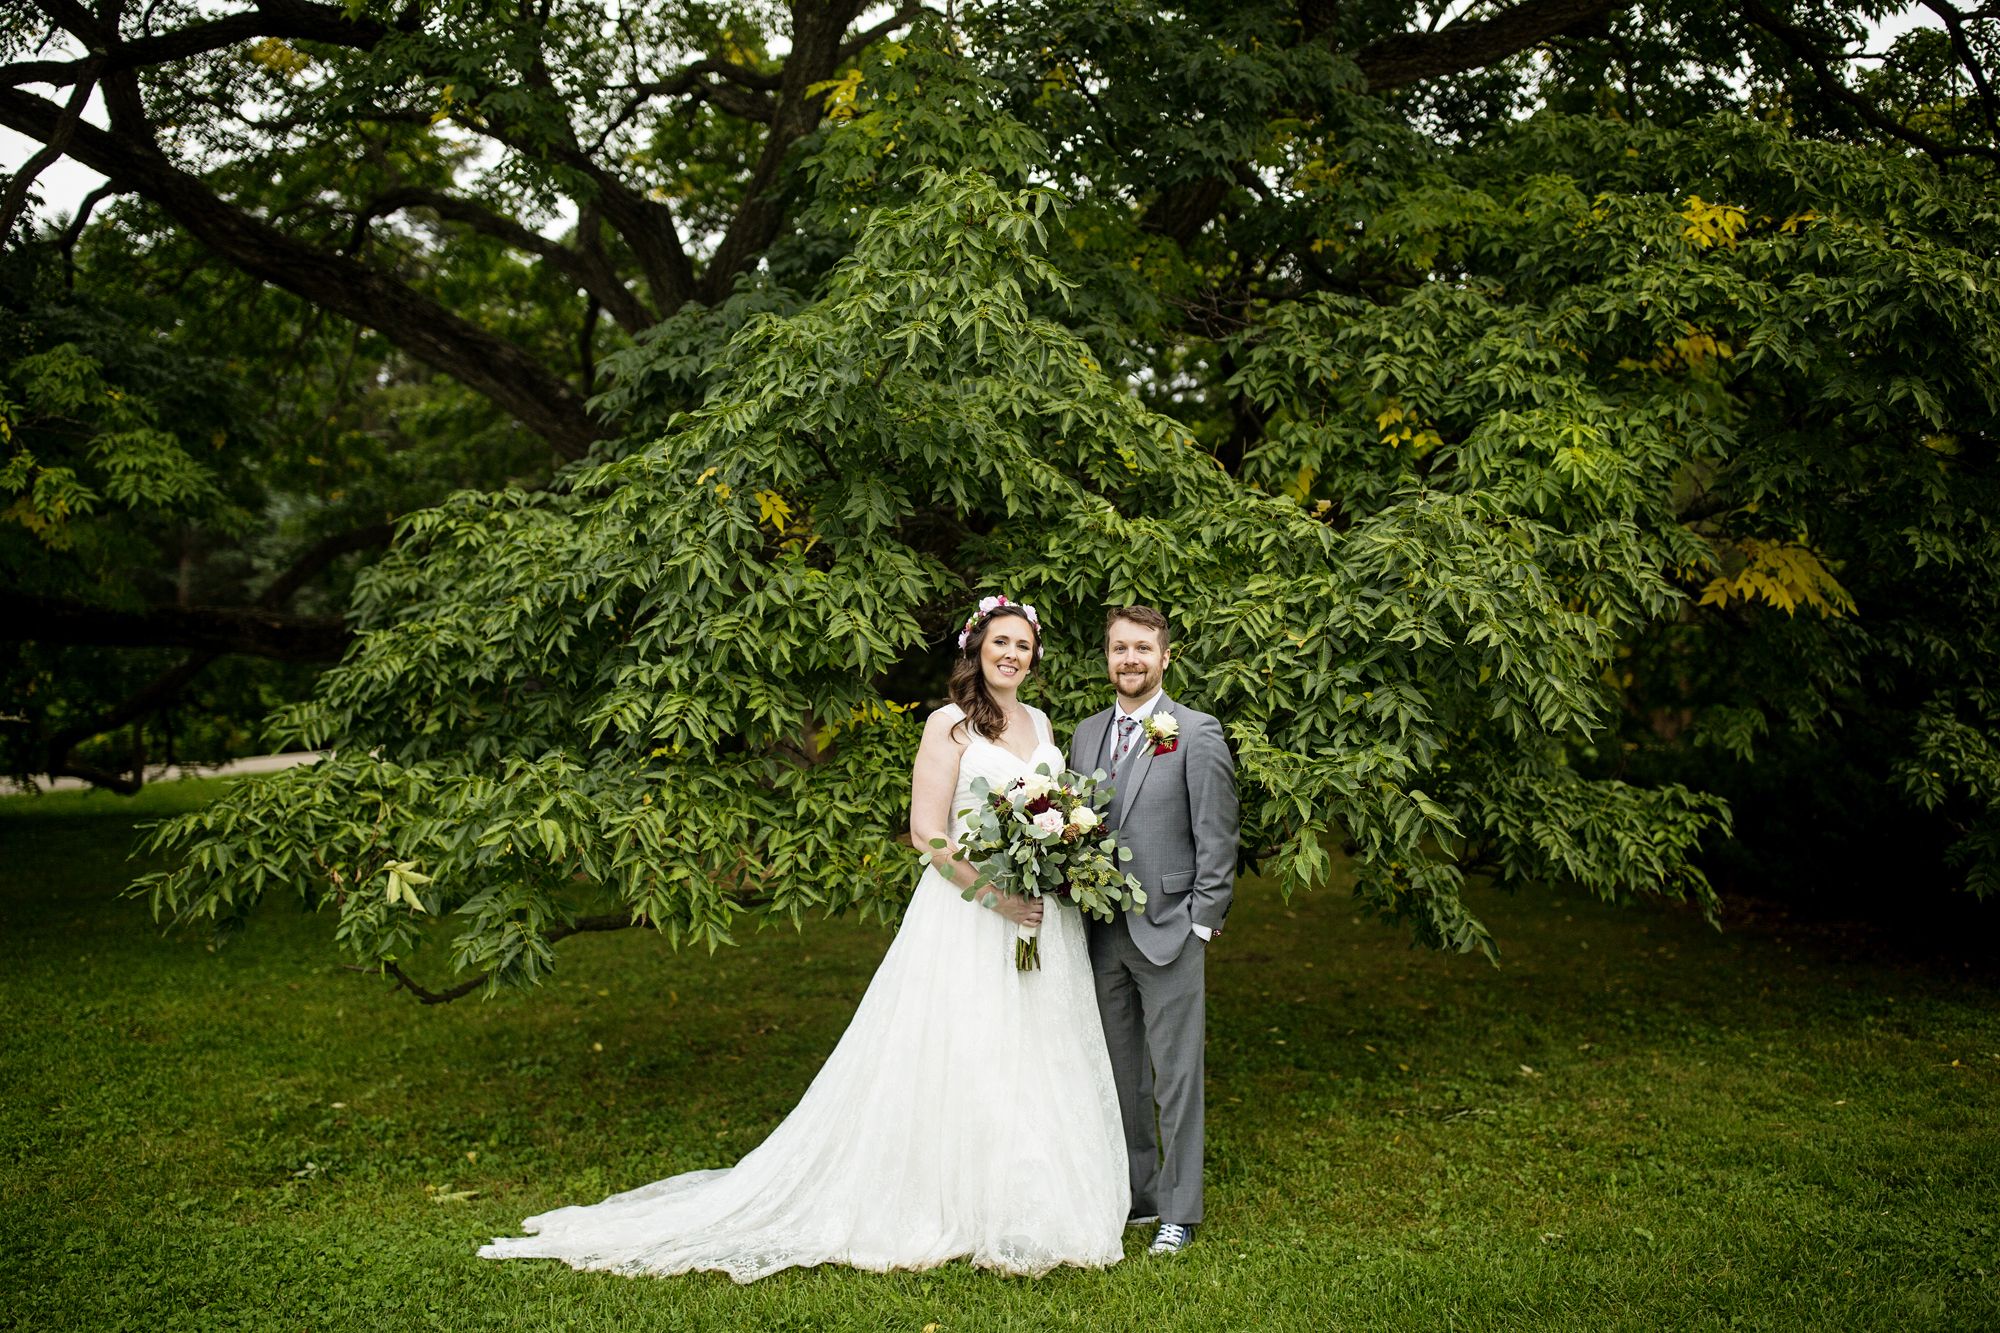 Seriously_Sabrina_Photography_Lisle_Illinois_Morton_Arboretum_Wedding_Day_Gowen88.jpg